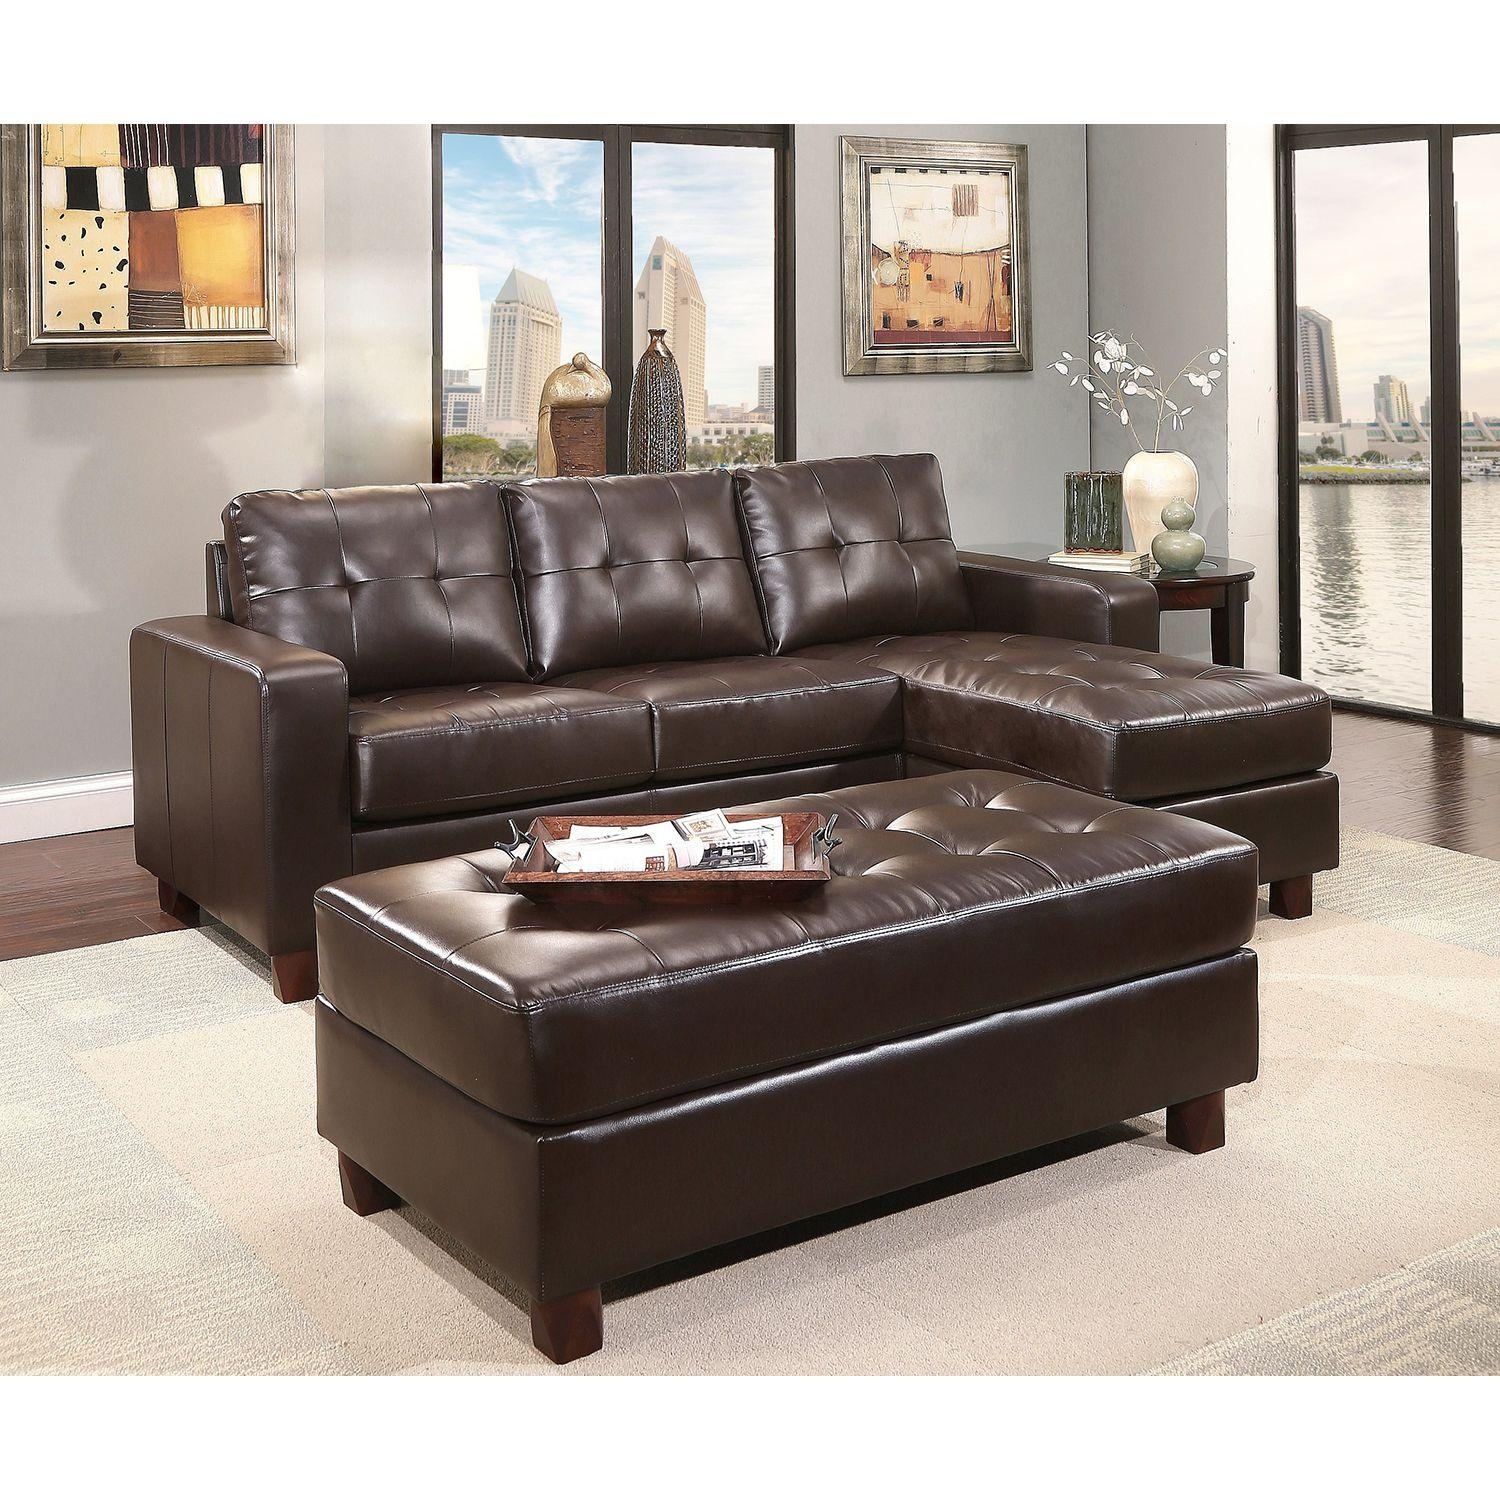 Large Sectional Sofa With Ottoman | Stools, Chairs, Seat, And Inside Sectional With Oversized Ottoman (View 15 of 20)